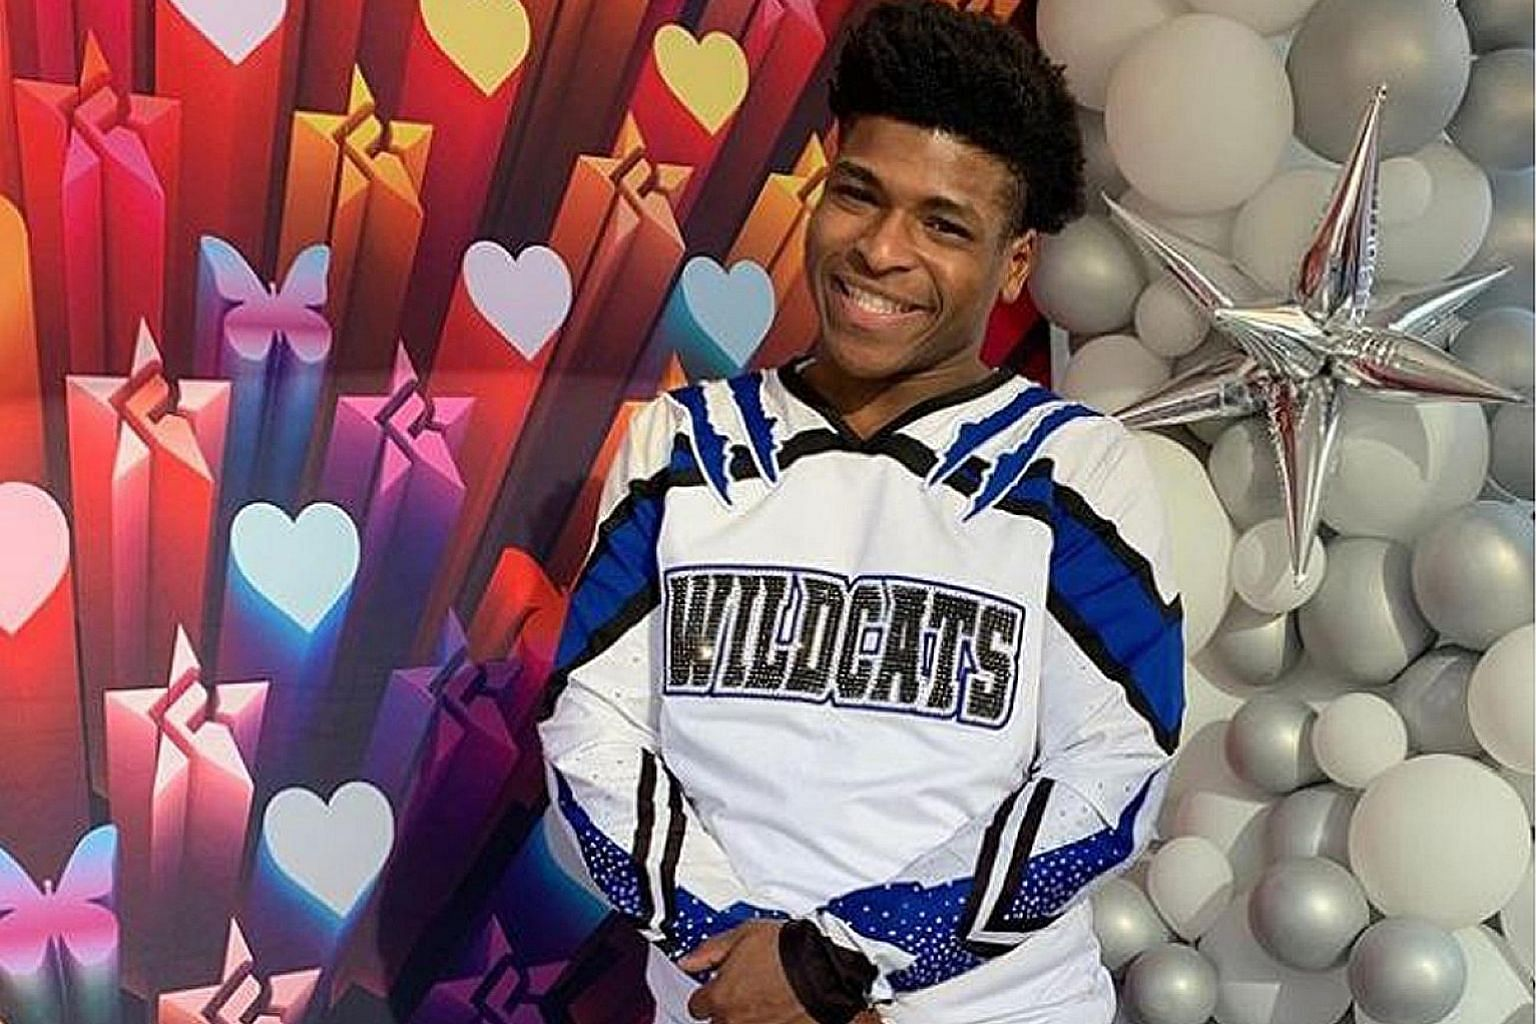 Celebrity cheerleader Jerry Harris is alleged to have sexually accosted a pair of 14-year-old twin brothers.